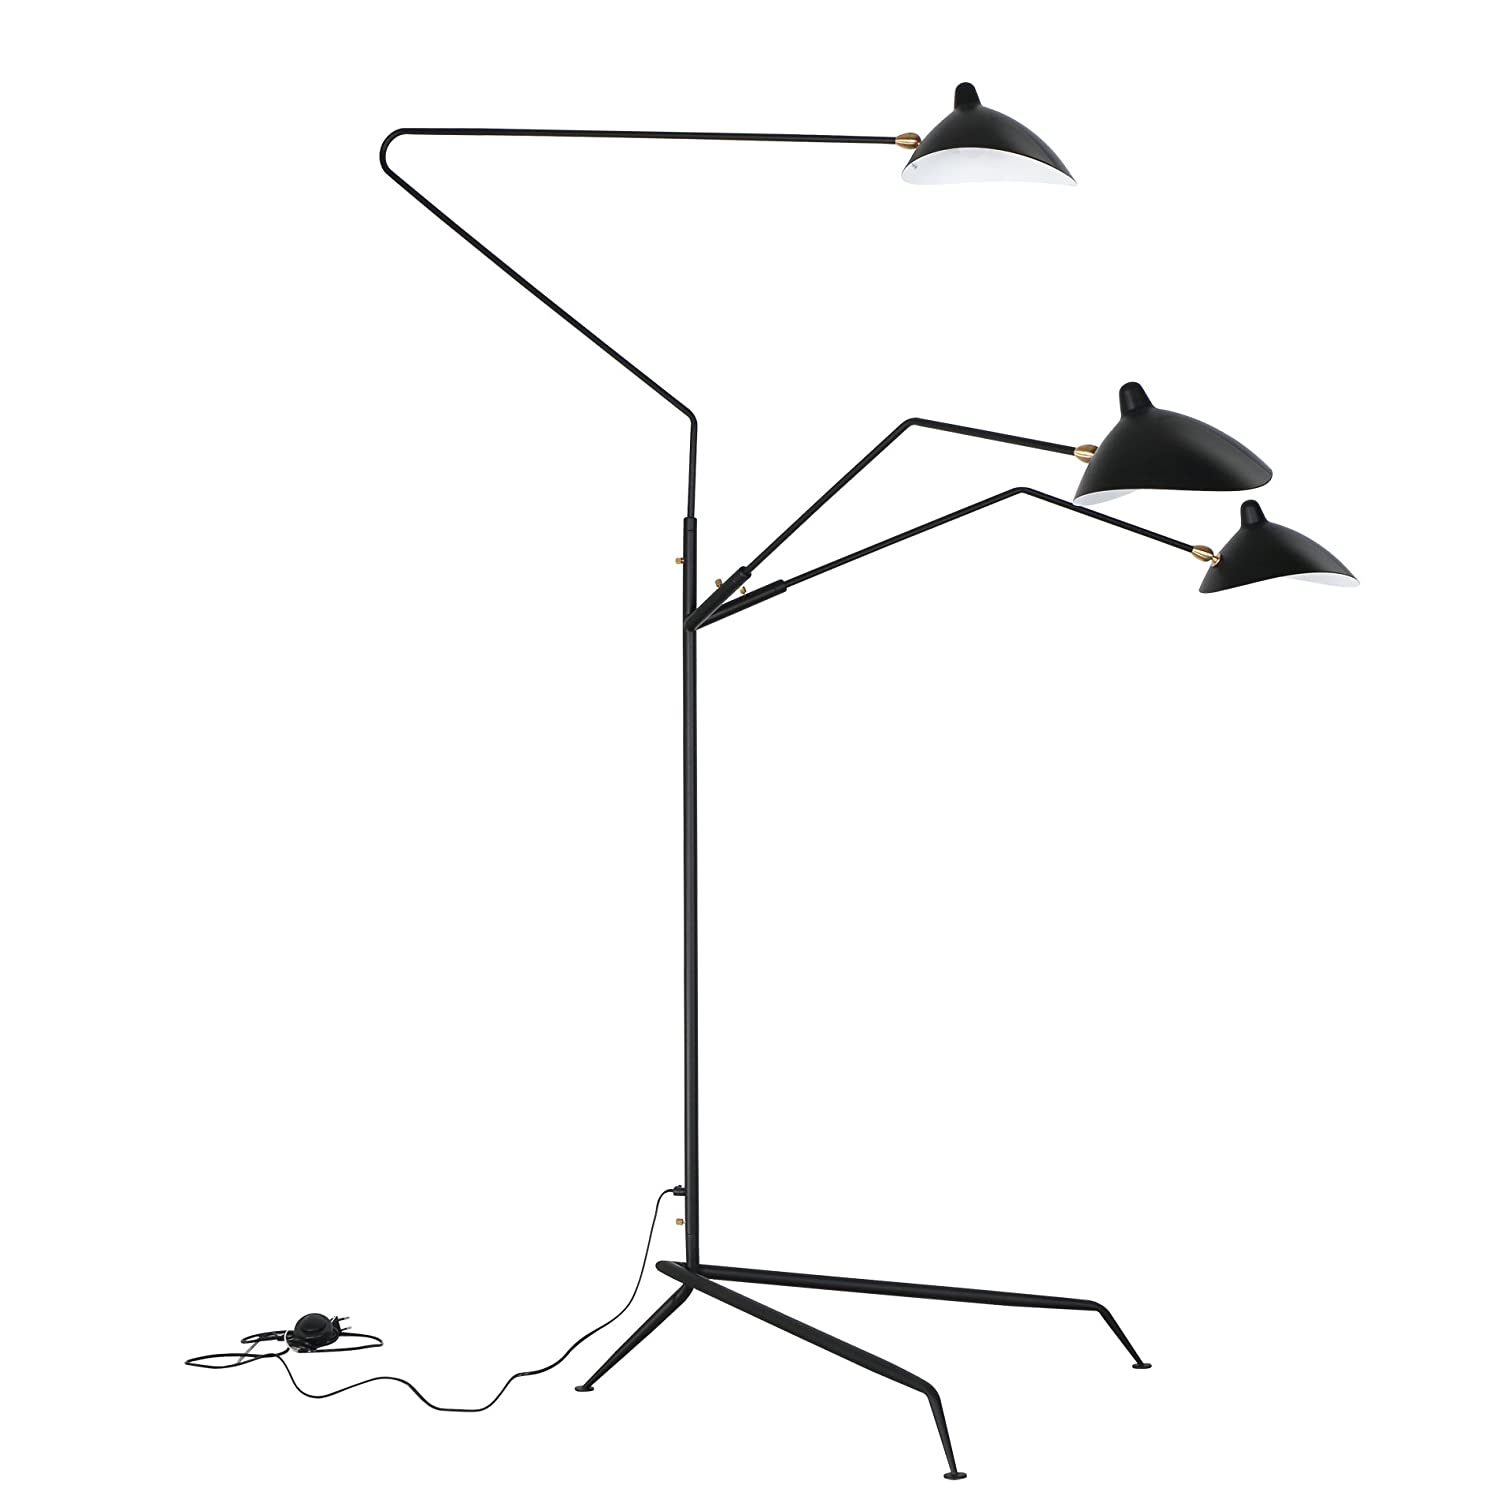 Reproduction of serge mouille three arm floor lamp standing lamp reproduction of serge mouille three arm floor lamp standing lamp amazon arubaitofo Images